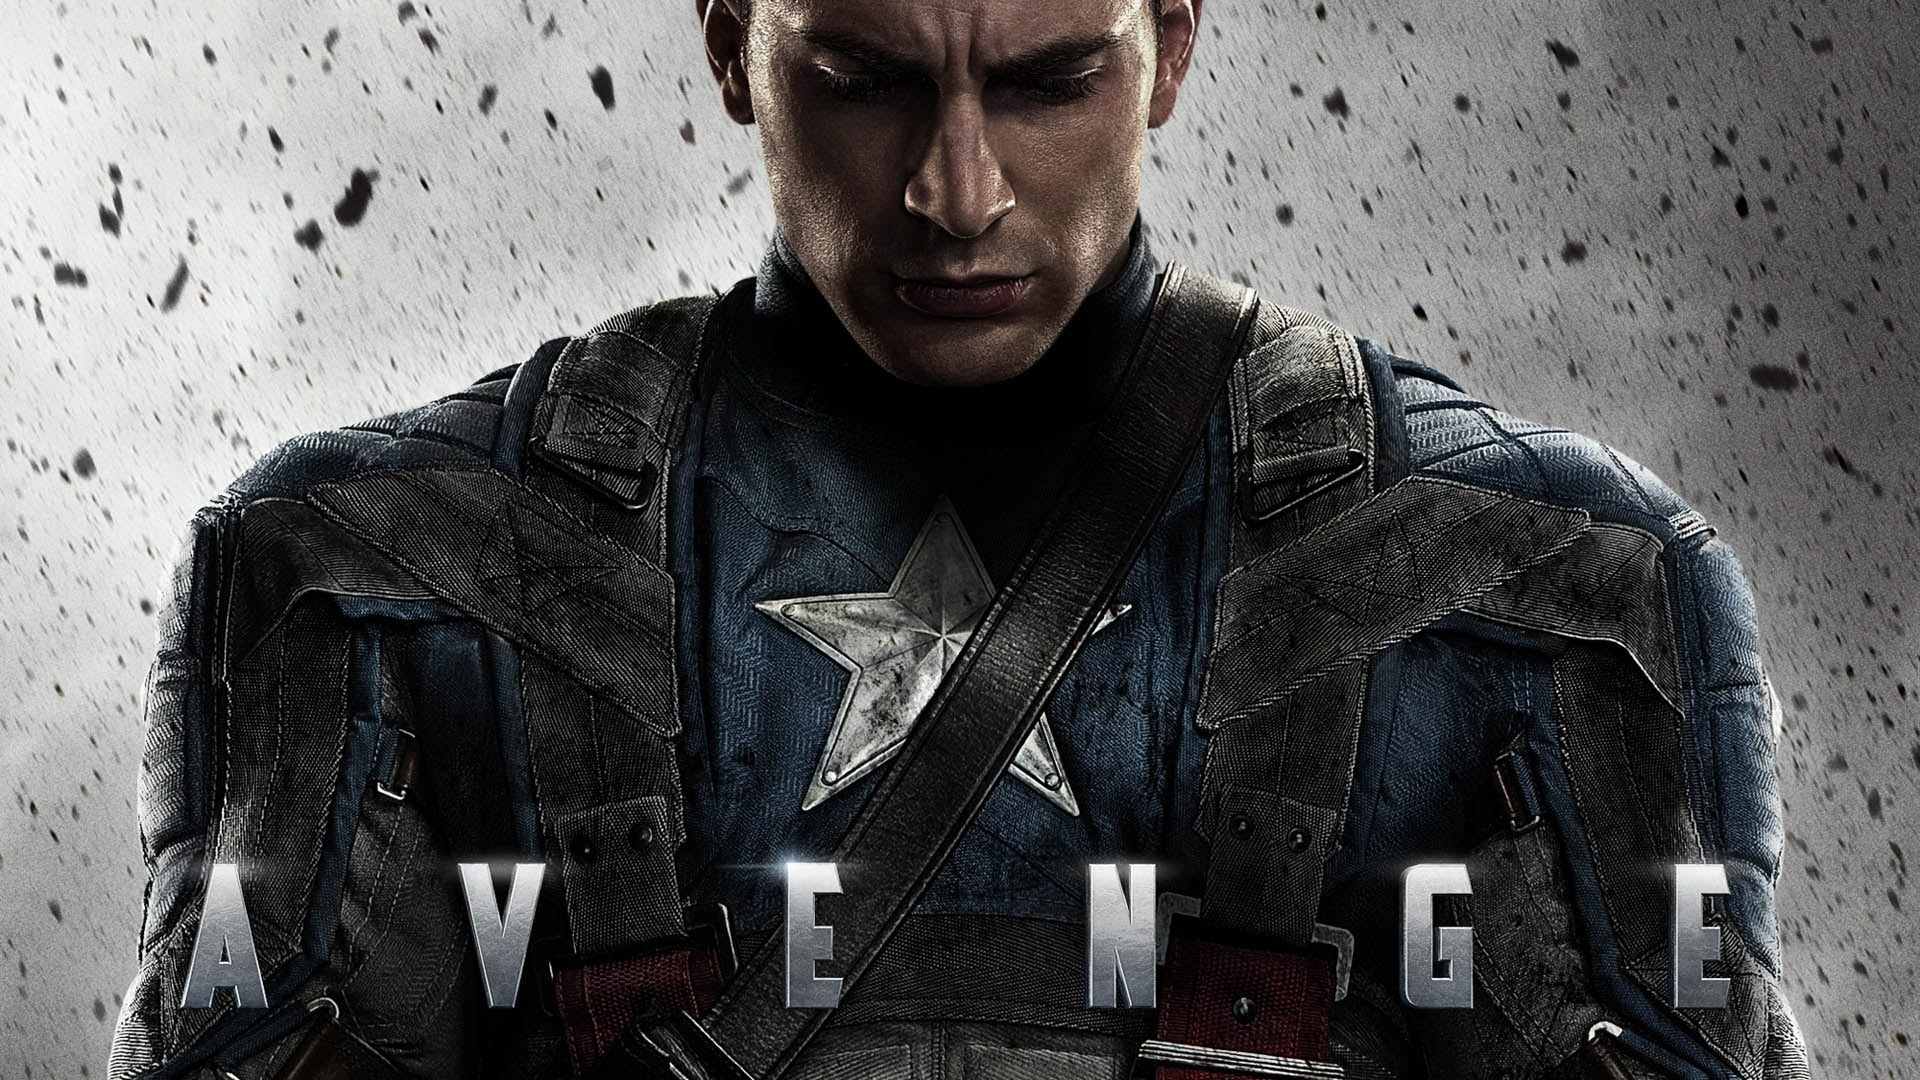 Captain America: The Winter Soldier full hd wallpapers